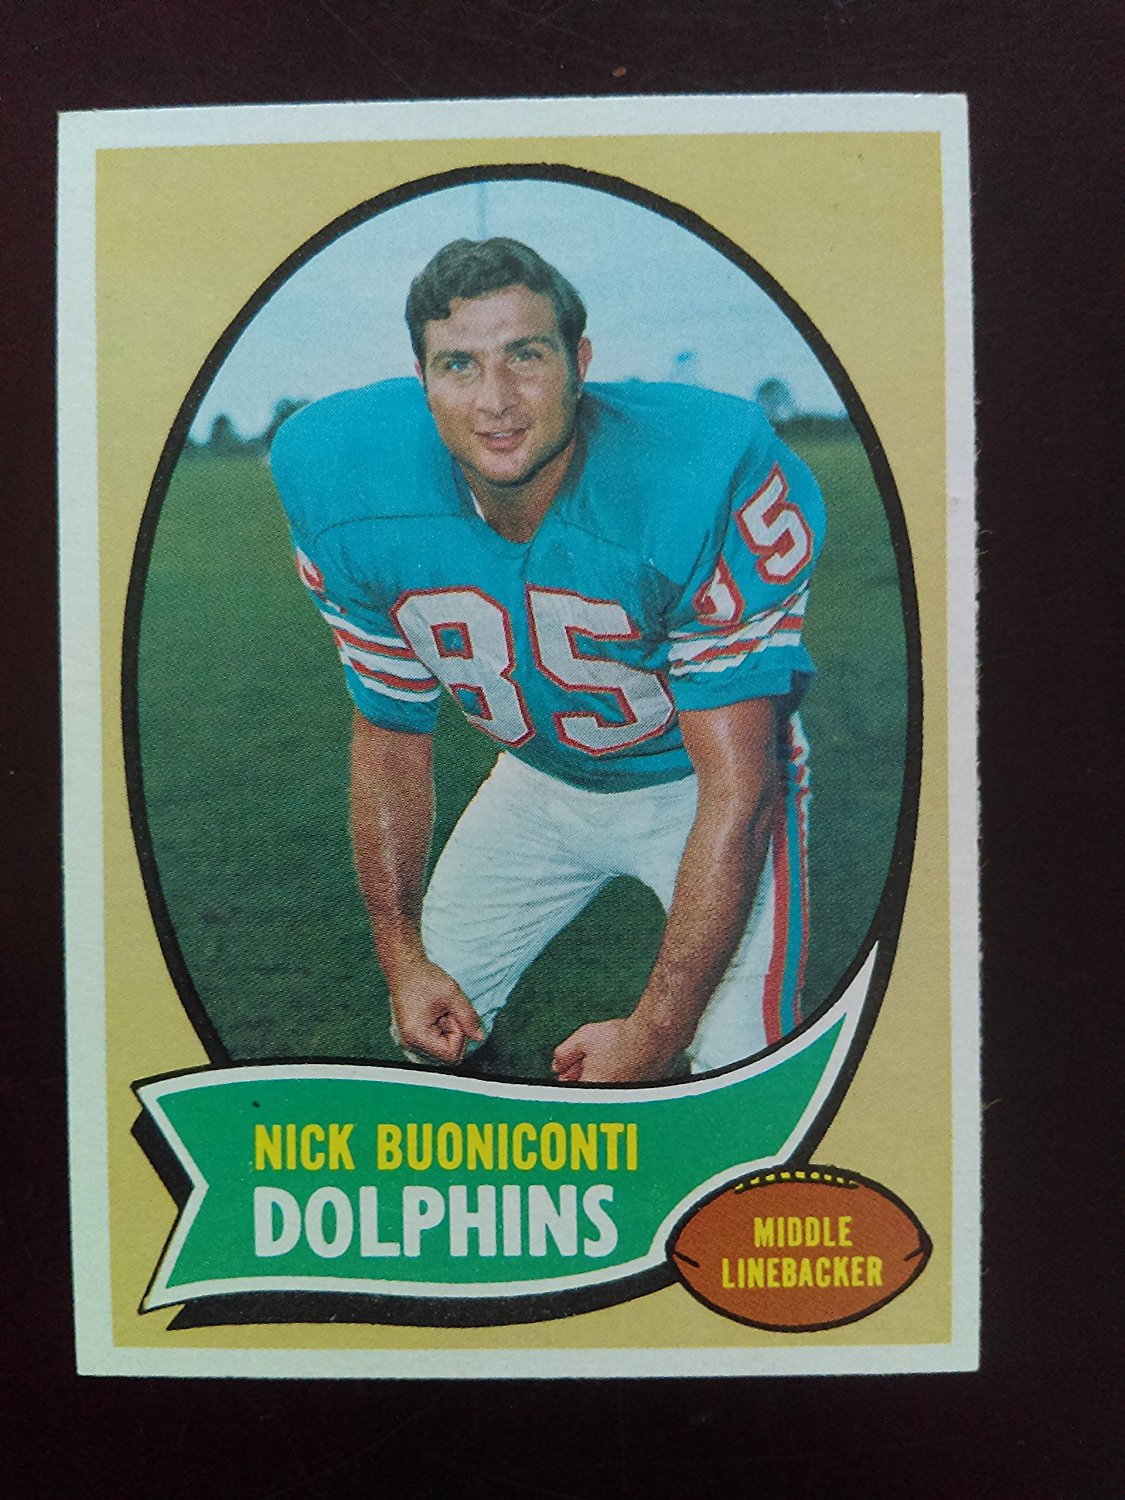 Nick Buoniconti (Football Card) 1970 Topps #244 - Miami Dolphins - Notre Dame Fighting Irish / Hall of Famer / Member of Undefeated Dolphins Team 17-0!